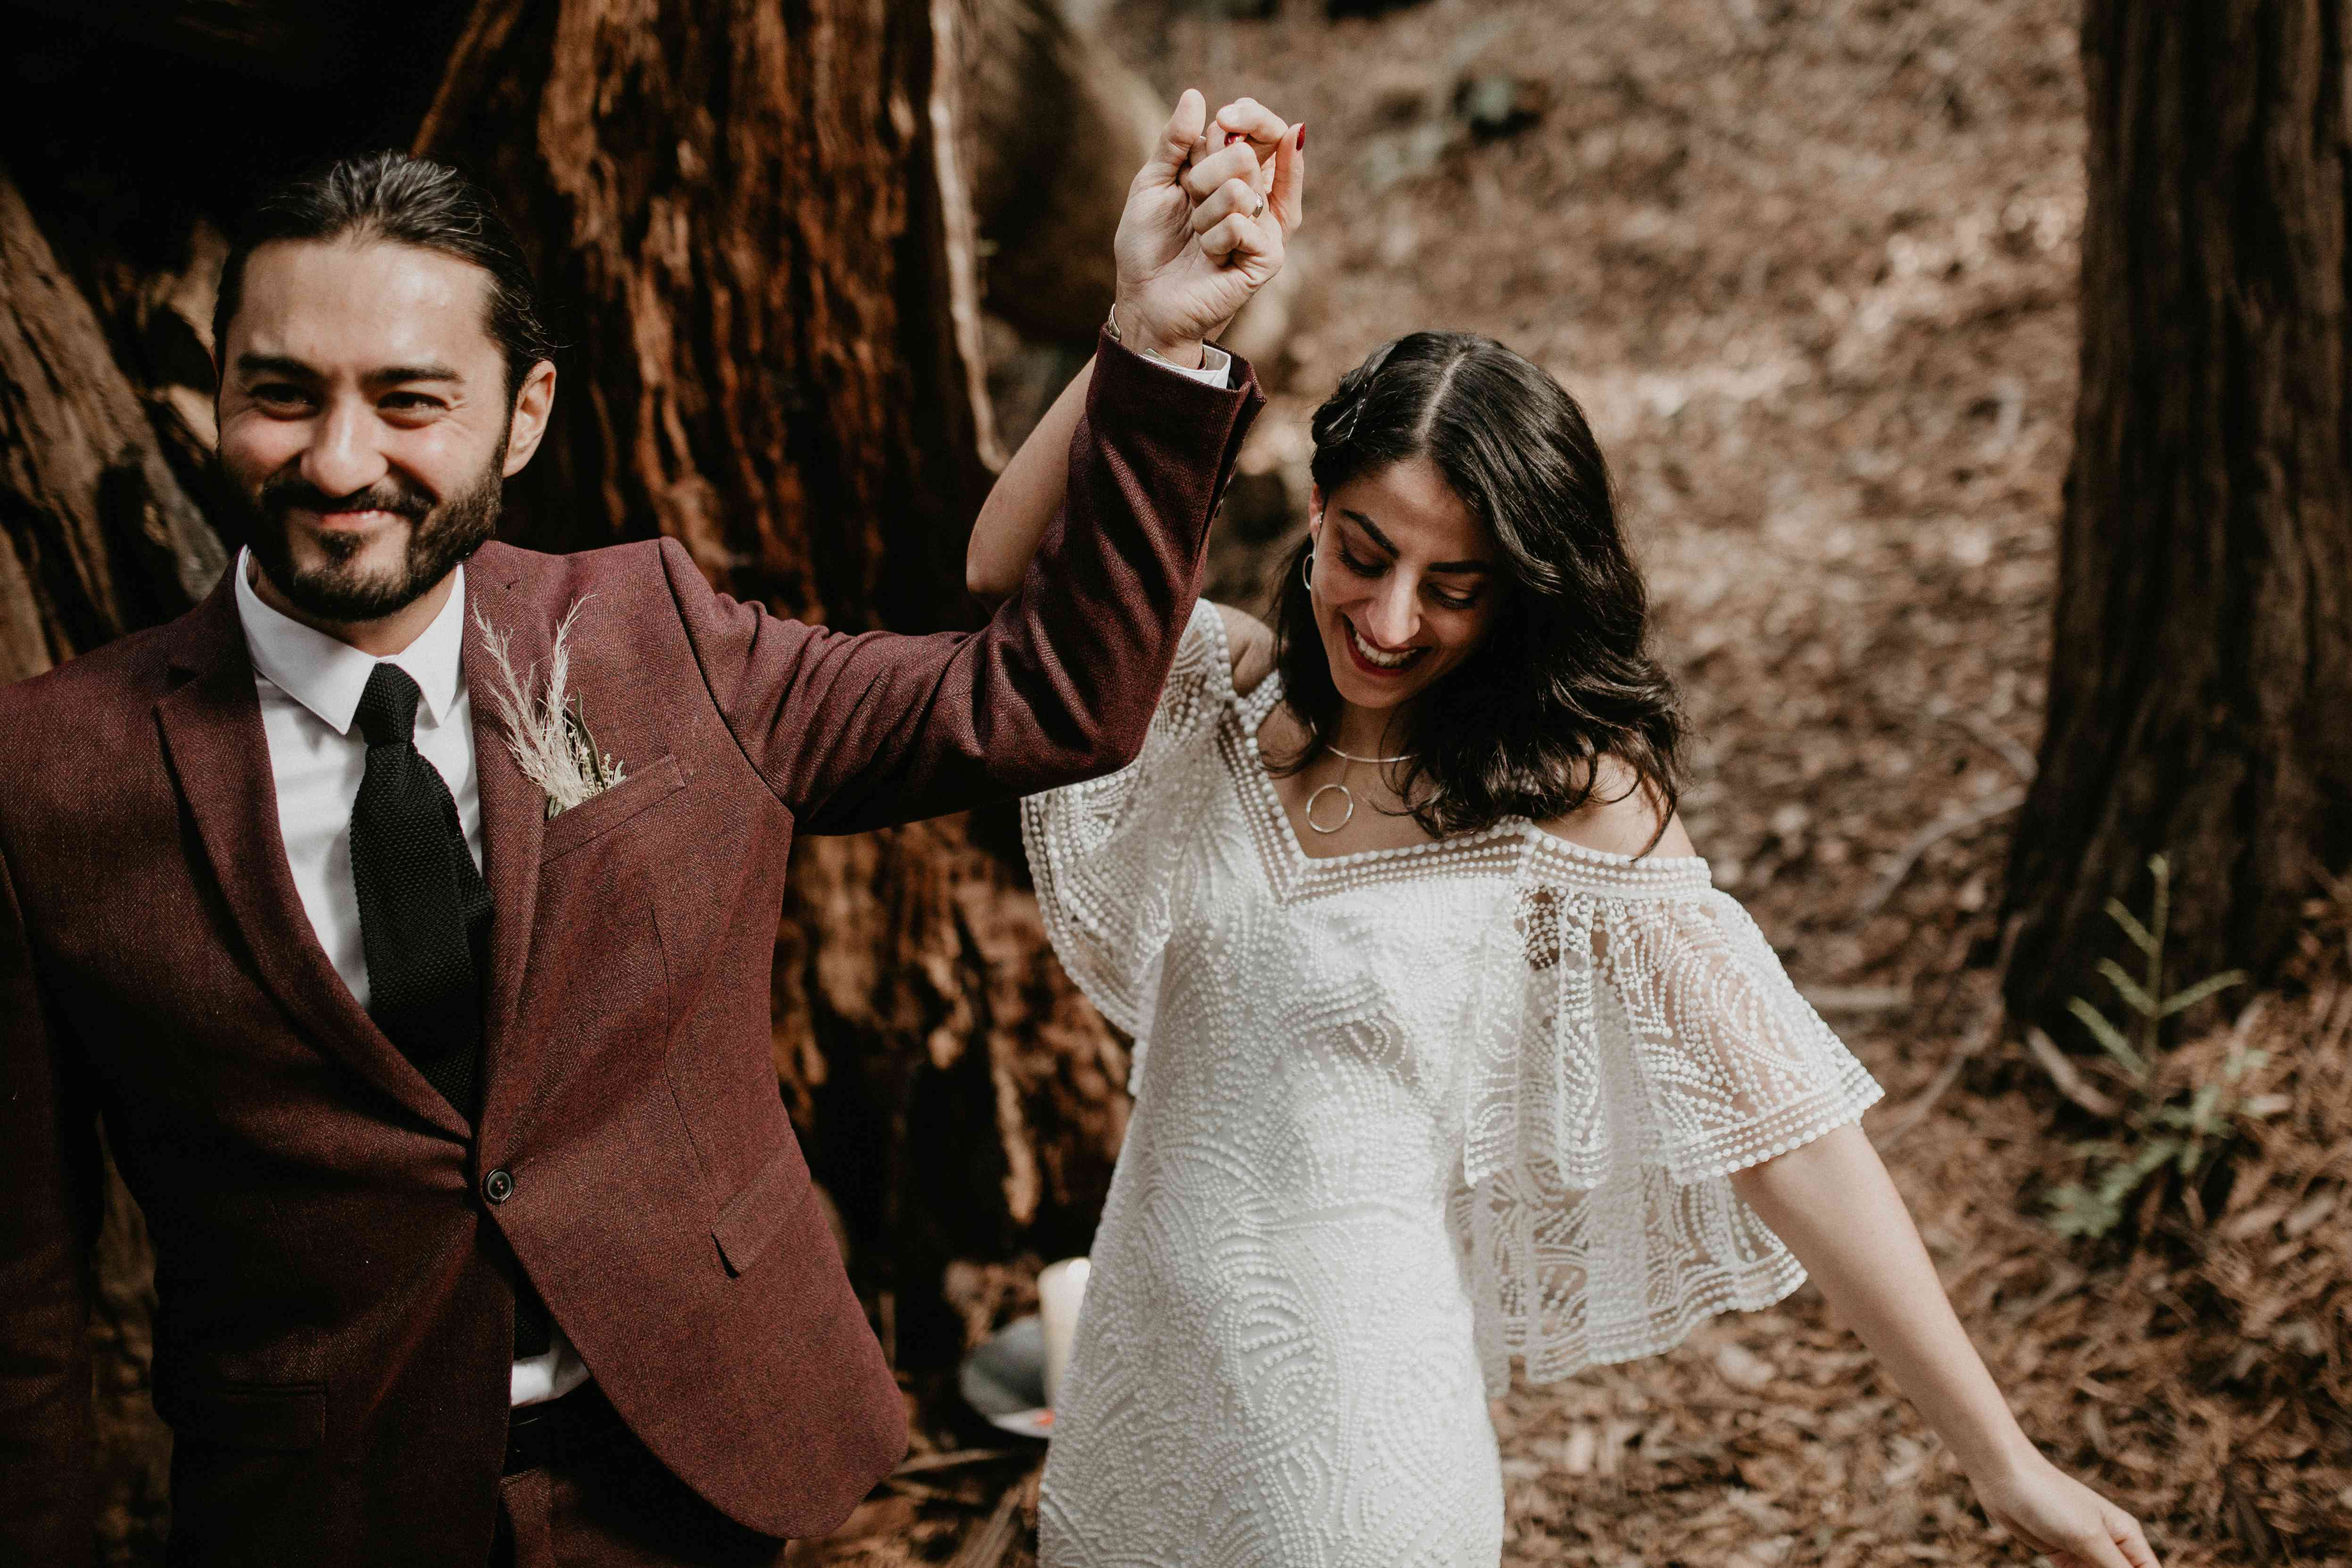 <p>ceremony exit bride and groom smiling</p><br><br>